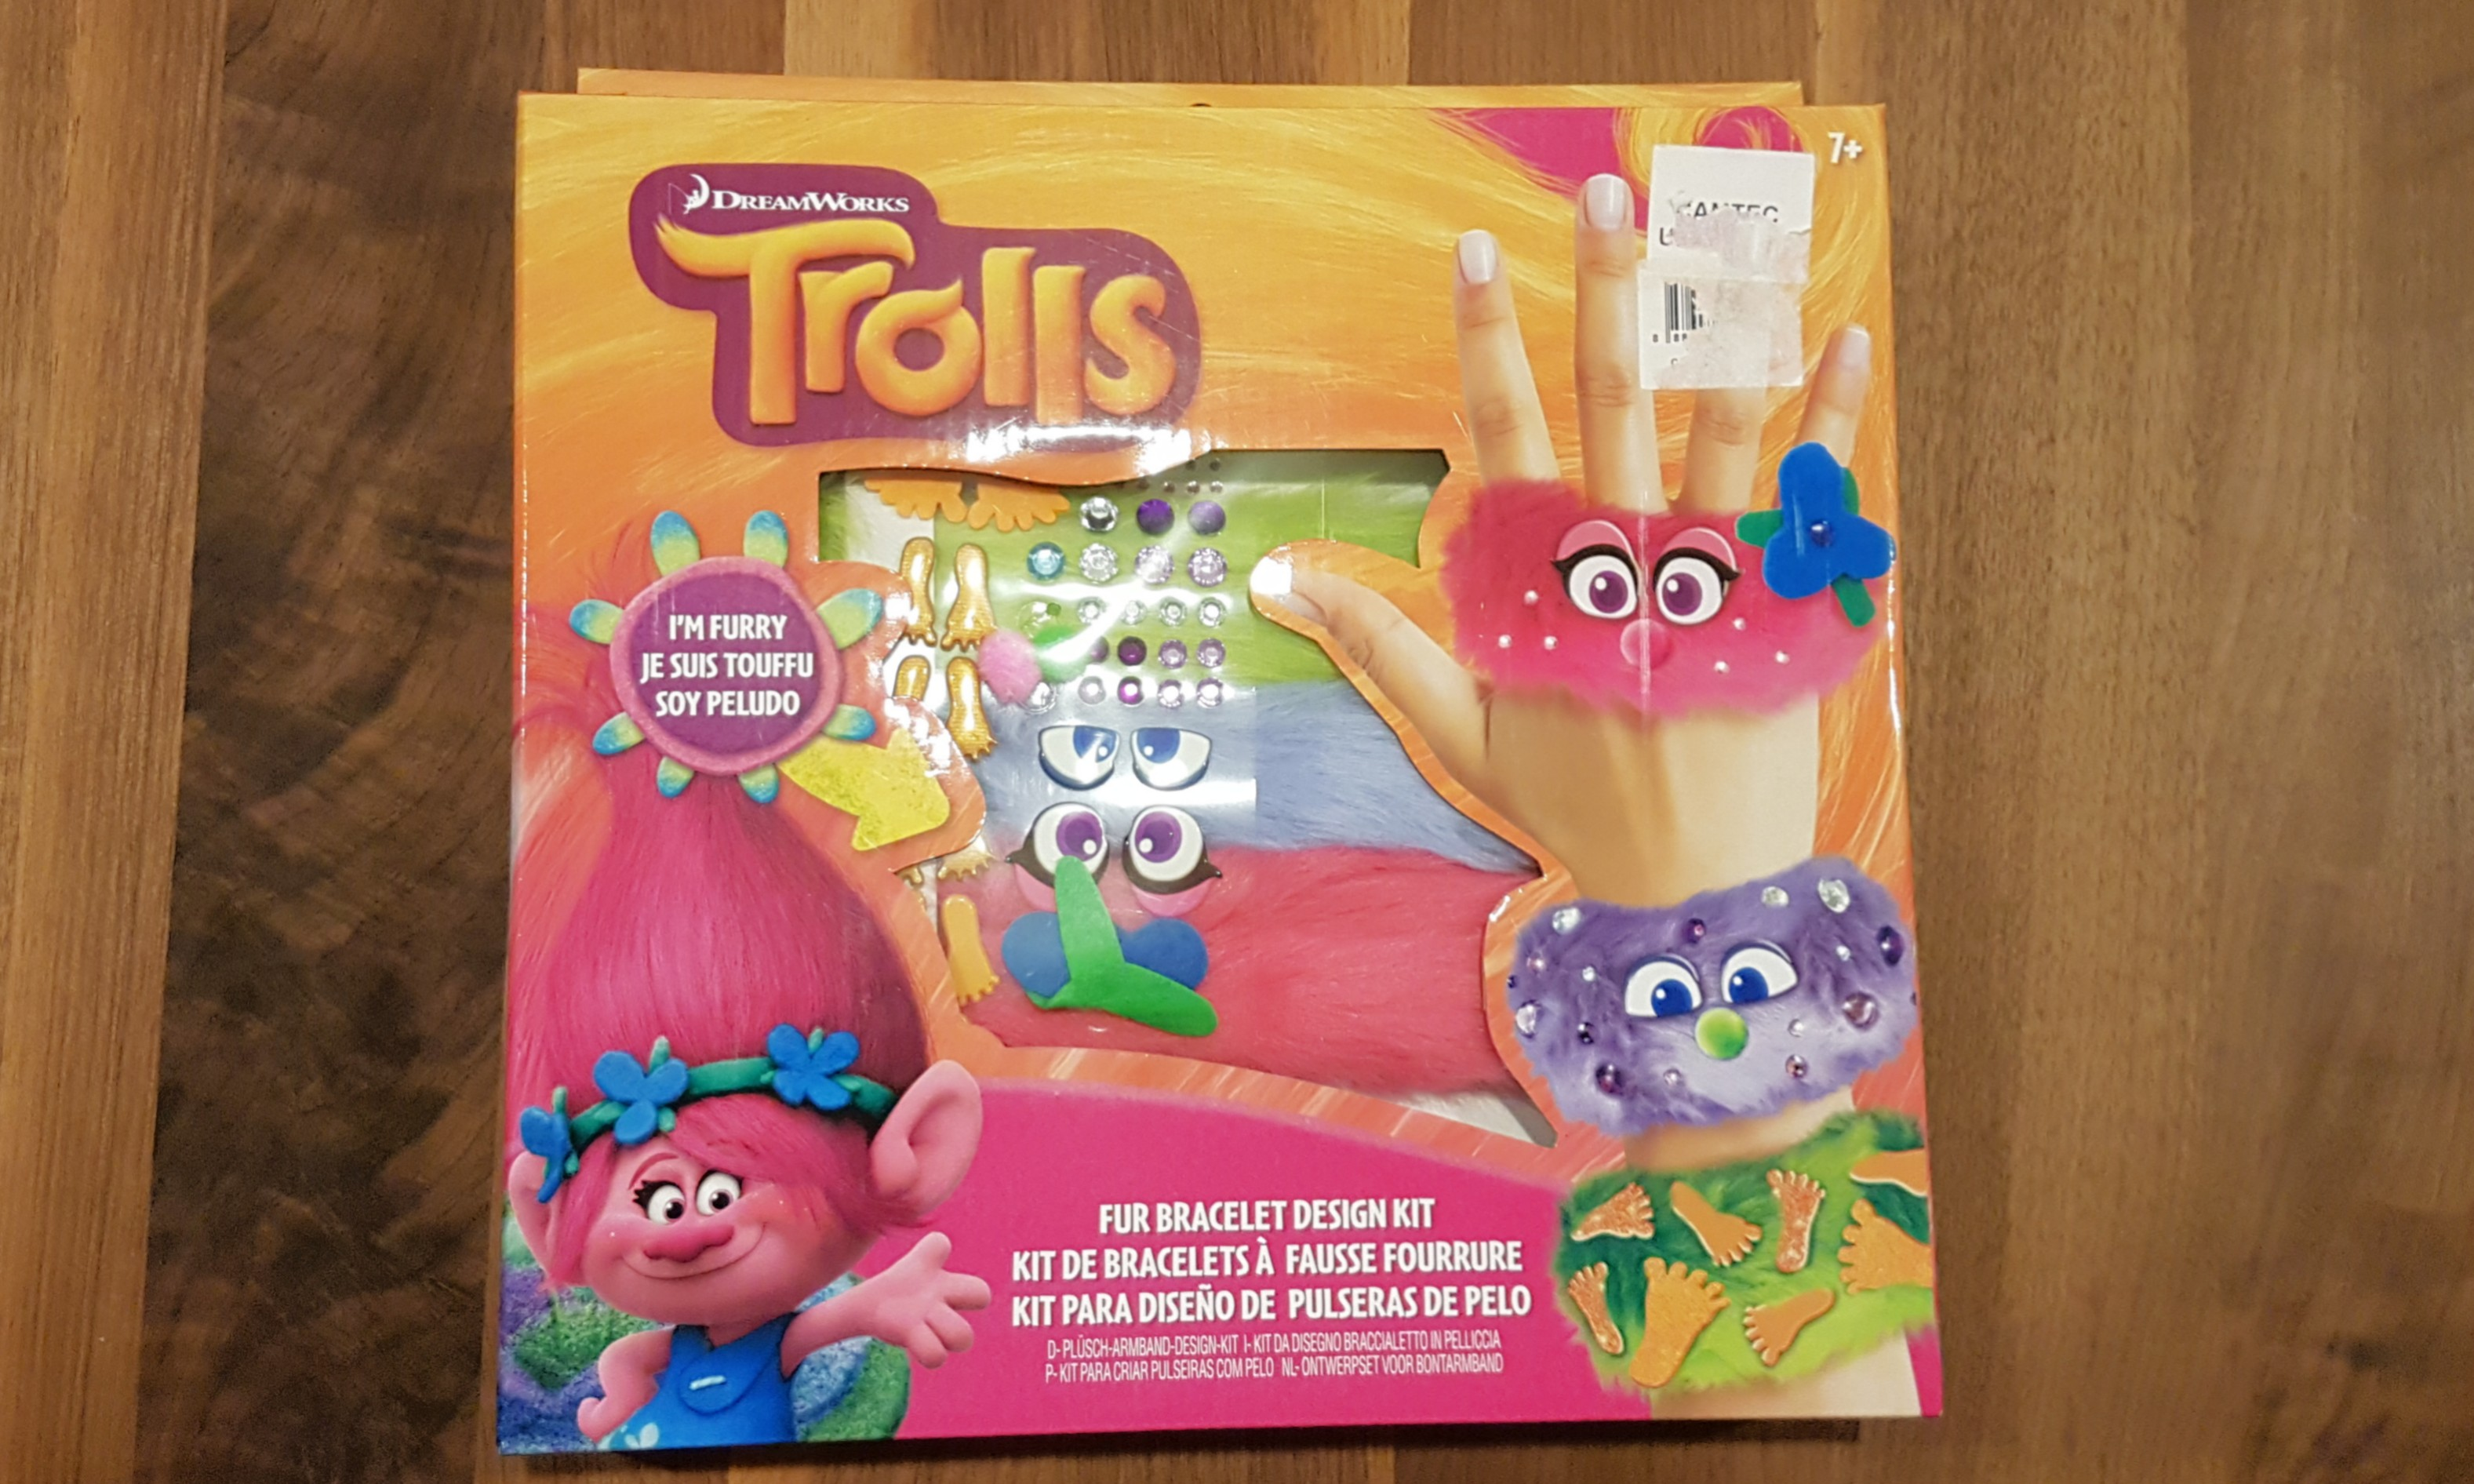 Dreamworks trolls fur bracelet design kit babies kids toys